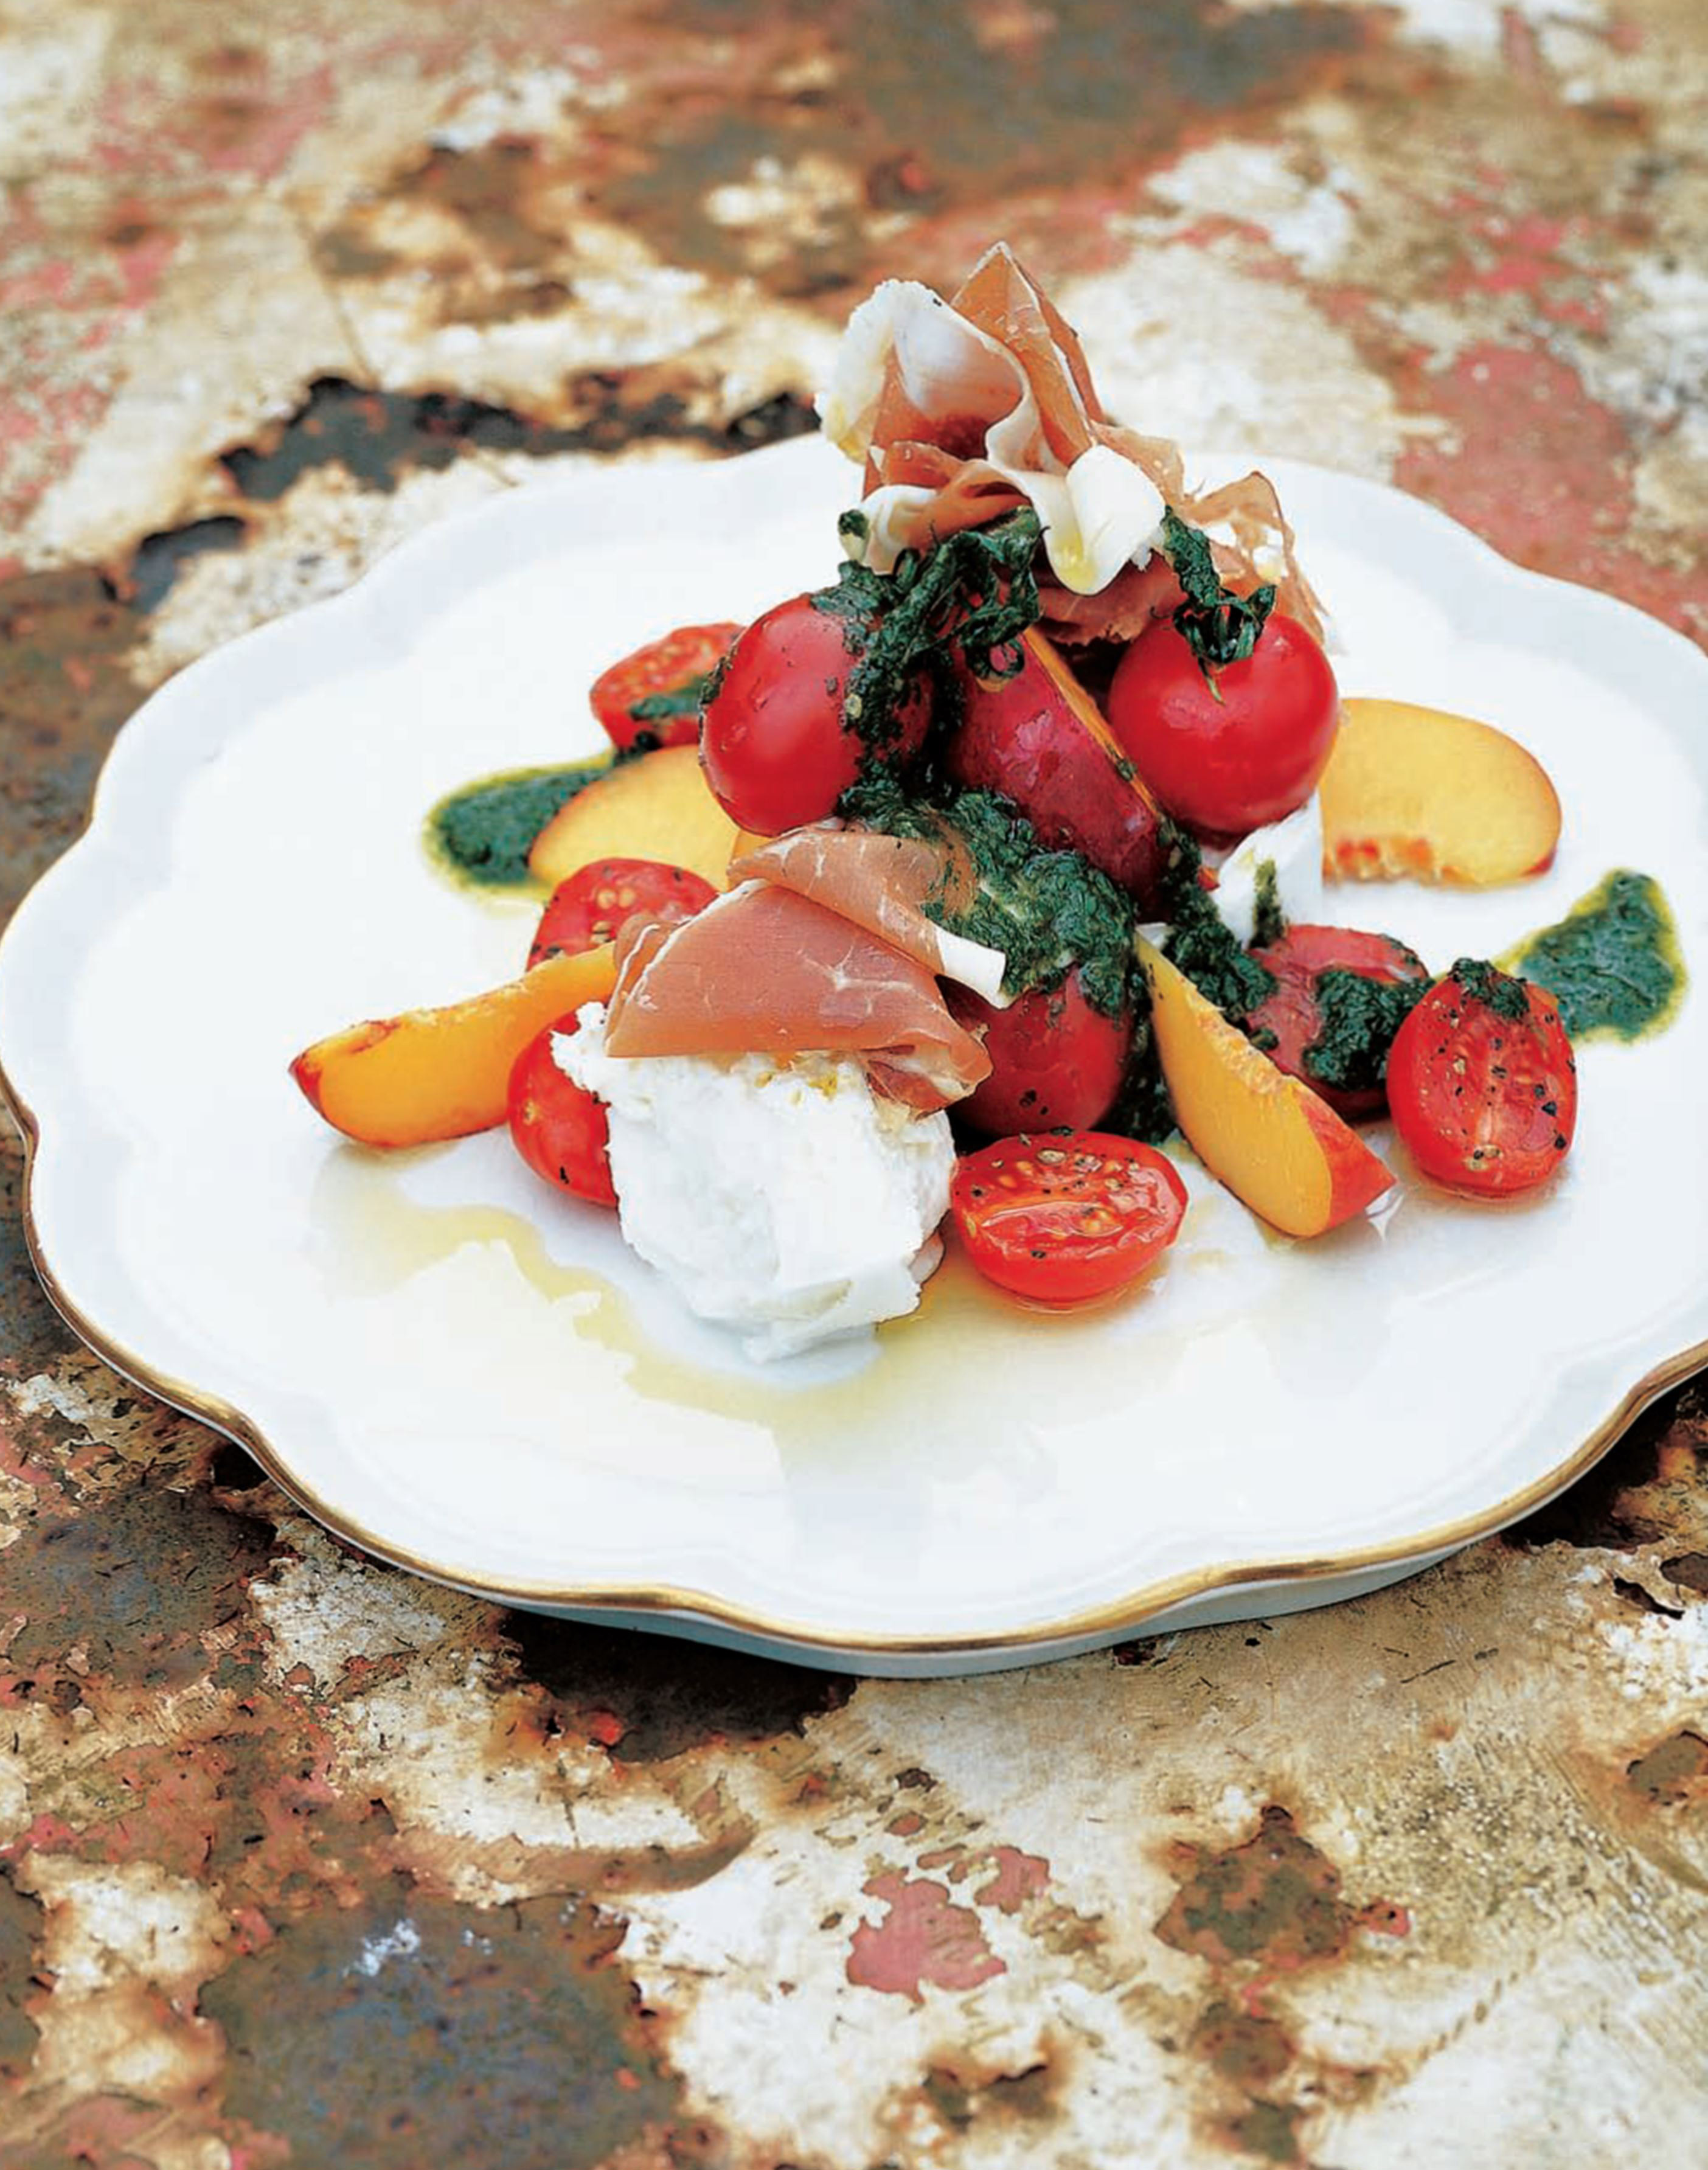 Nectarine and tomato salad with parma ham and buffalo mozzarella